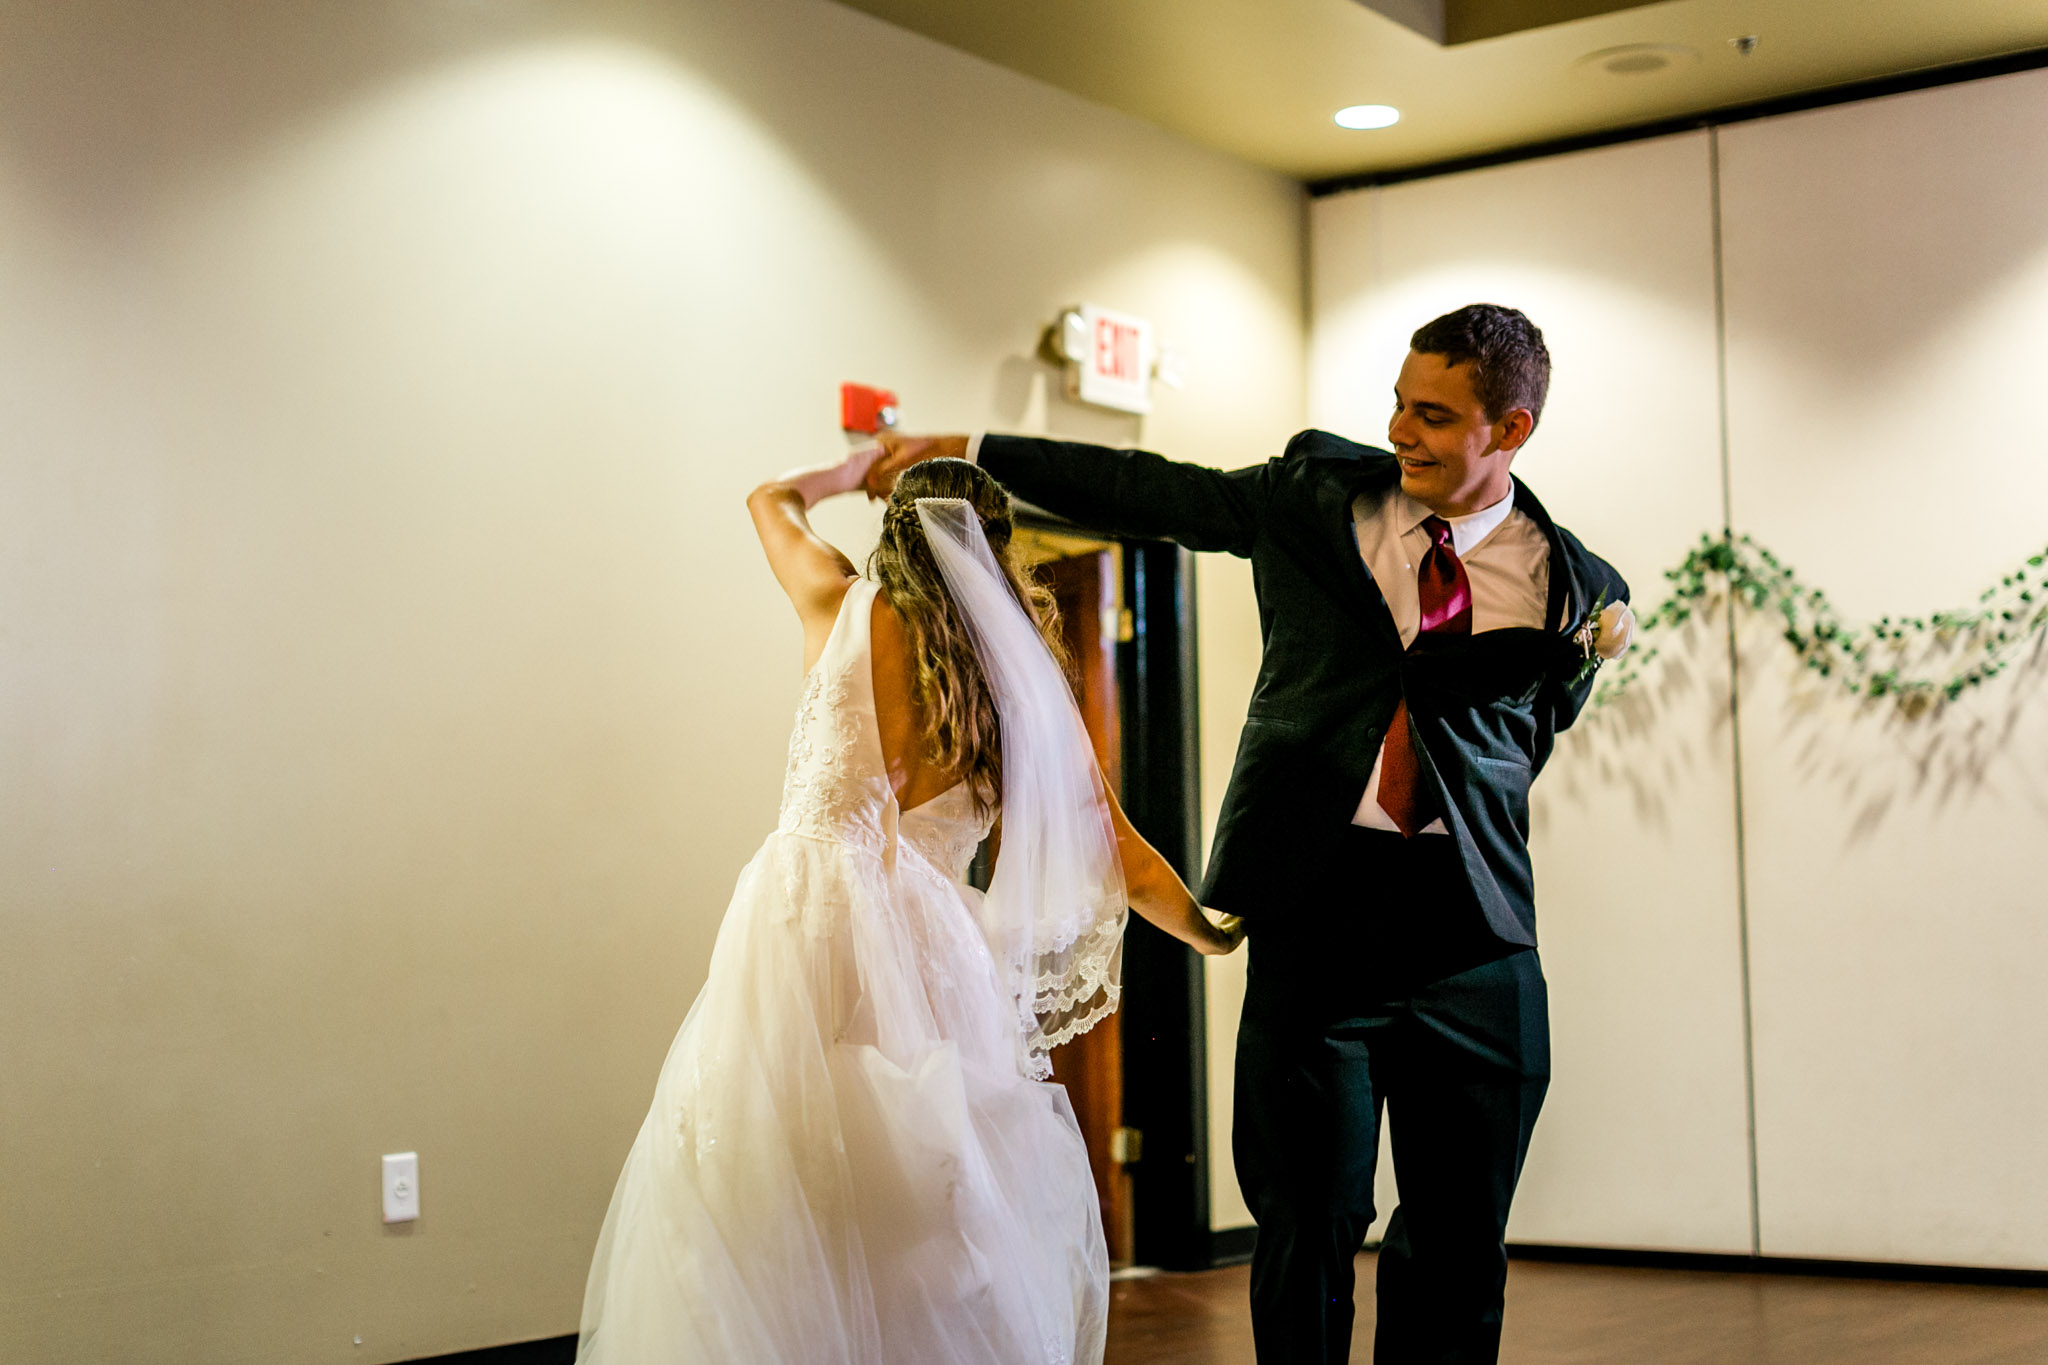 First dance by bride and groom at Royal Banquet Conference Center | Raleigh Wedding Photographer | By G. Lin Photography